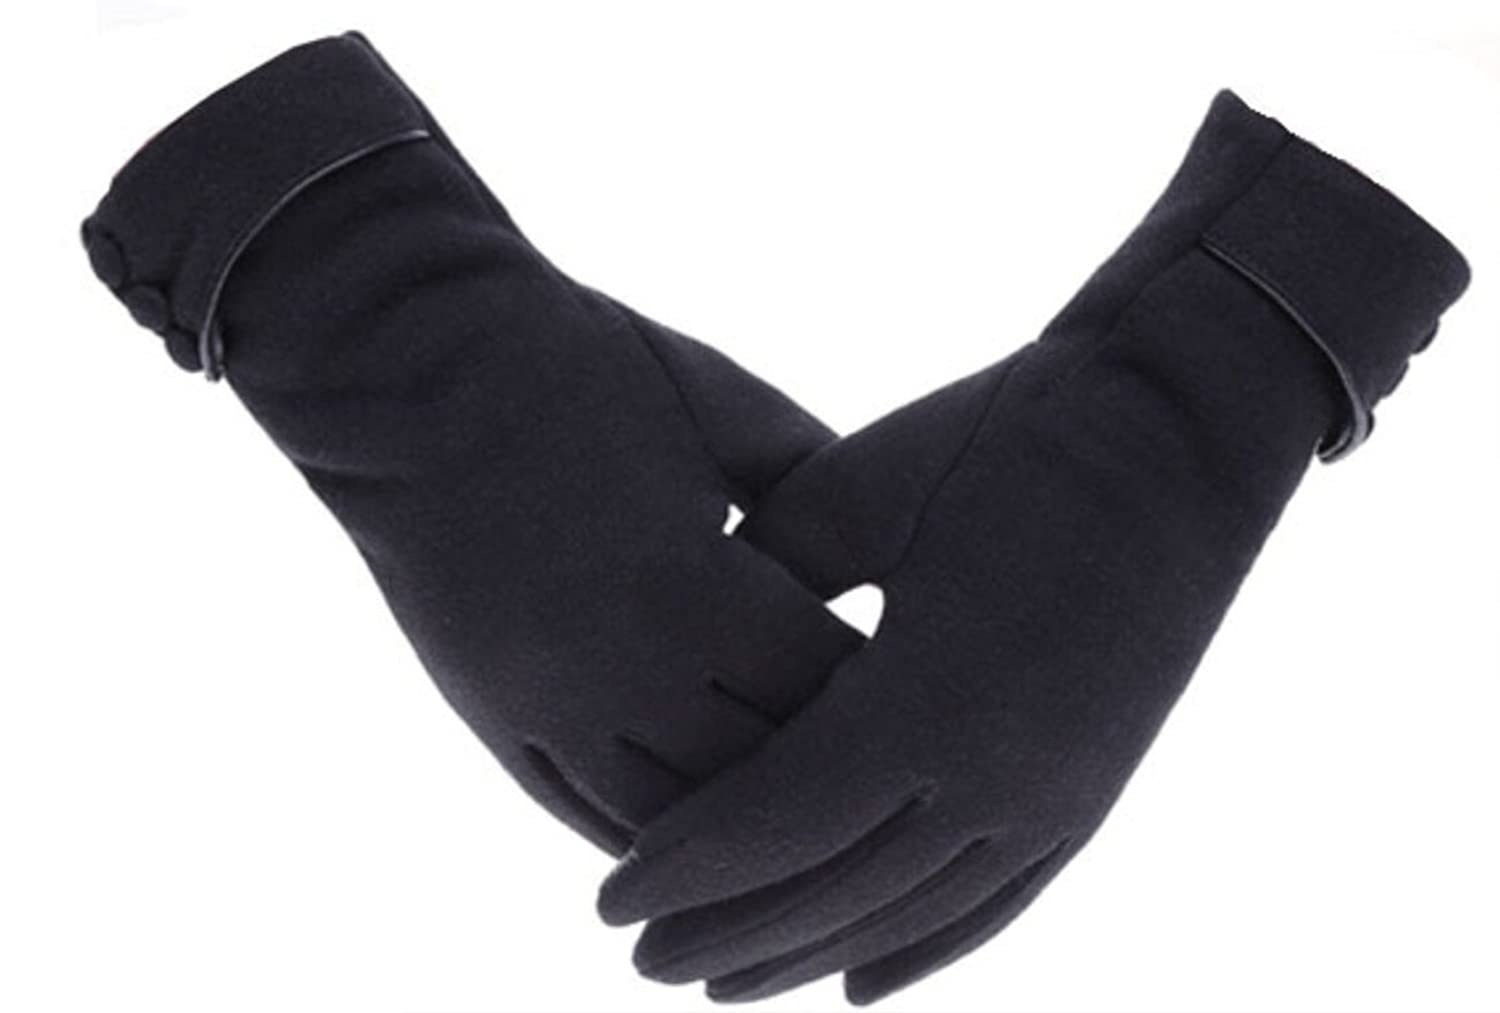 Womens leather smartphone gloves - Tomily Womens Touch Screen Phone Fleece Windproof Gloves Winter Warm Wear Black At Amazon Women S Clothing Store